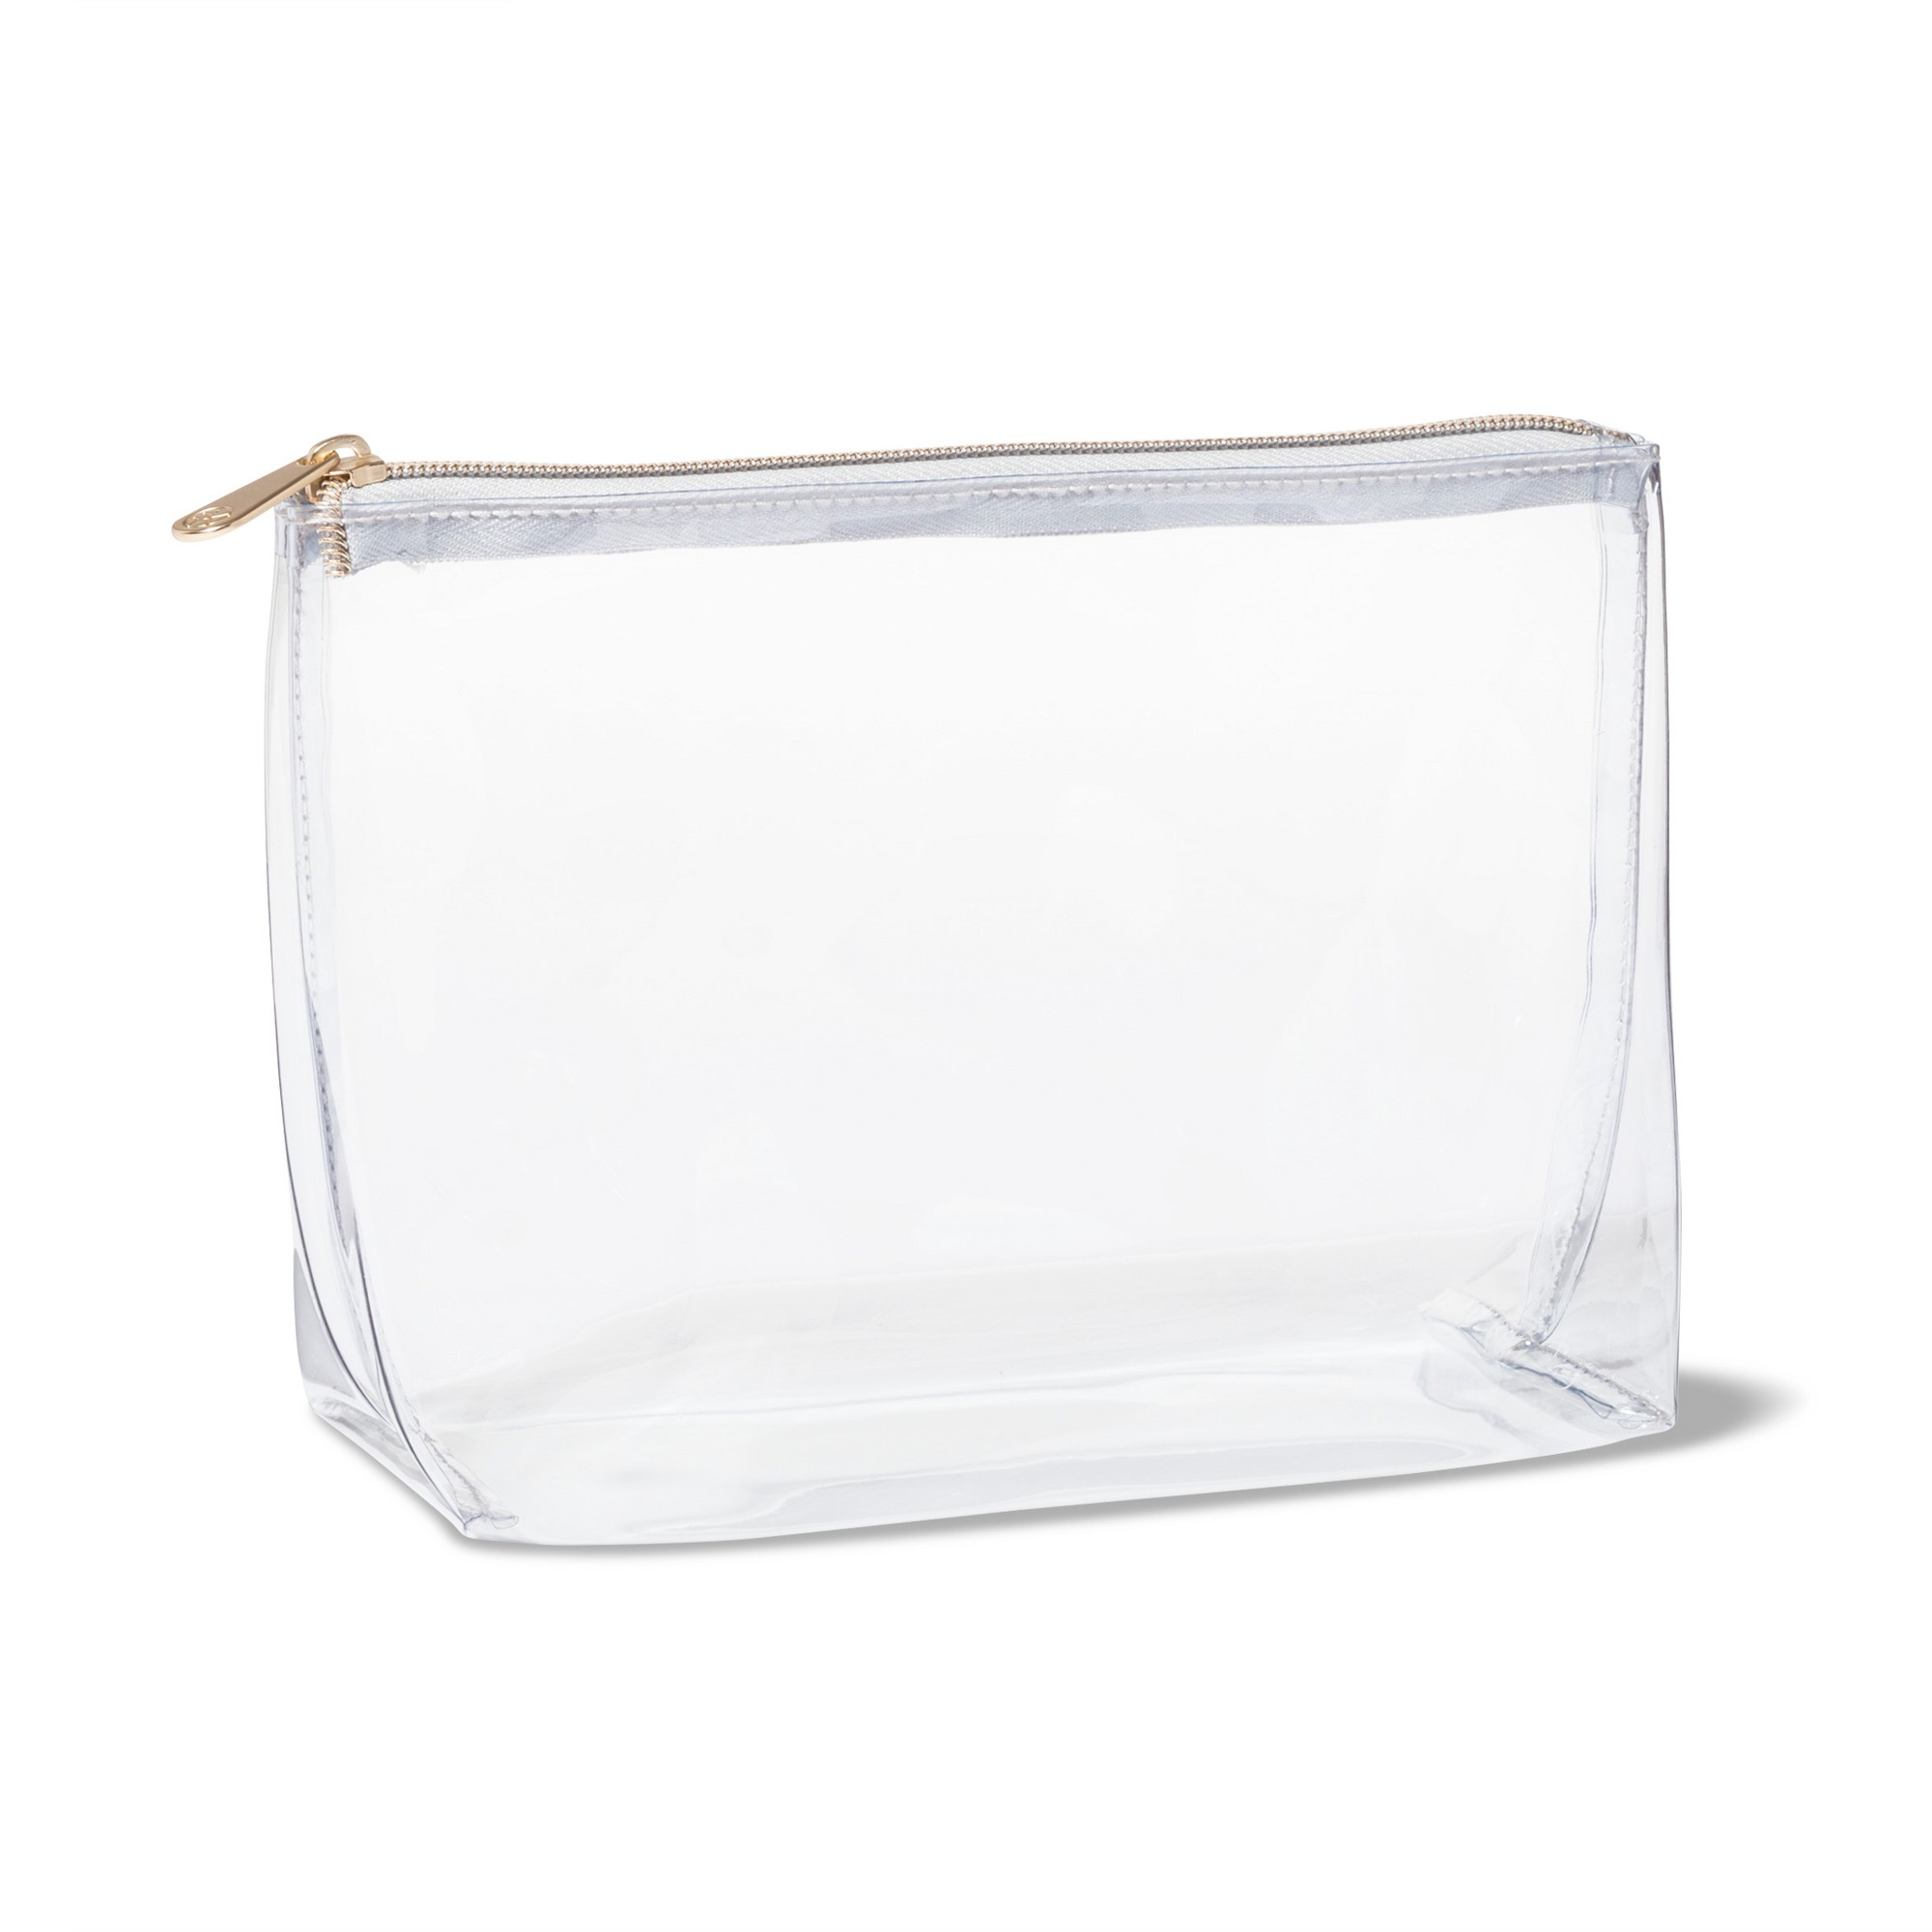 9e228ff734ba Sonia Kashuk™ Square Clutch Makeup Bag - Clear in 2019 | Products ...